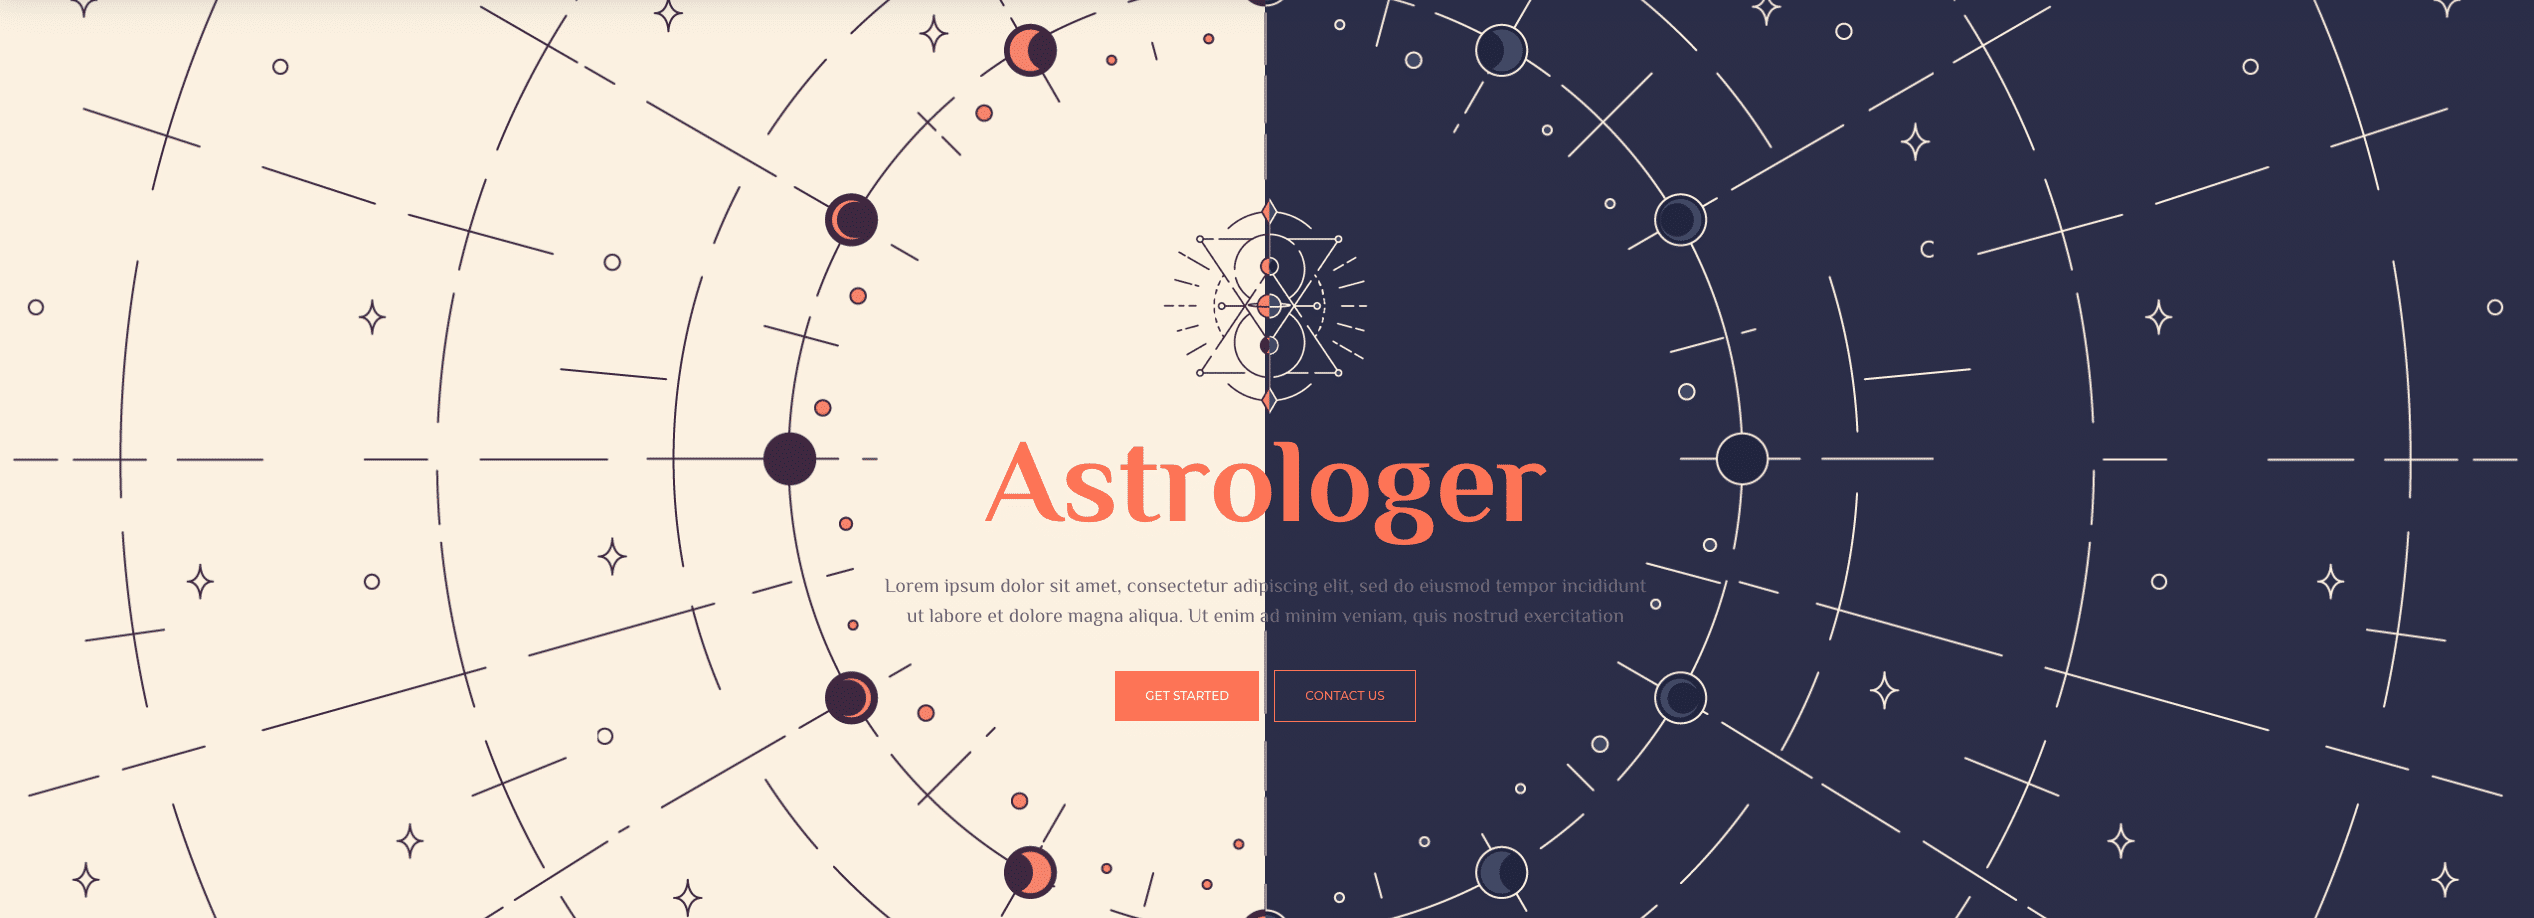 Astrologist Website design